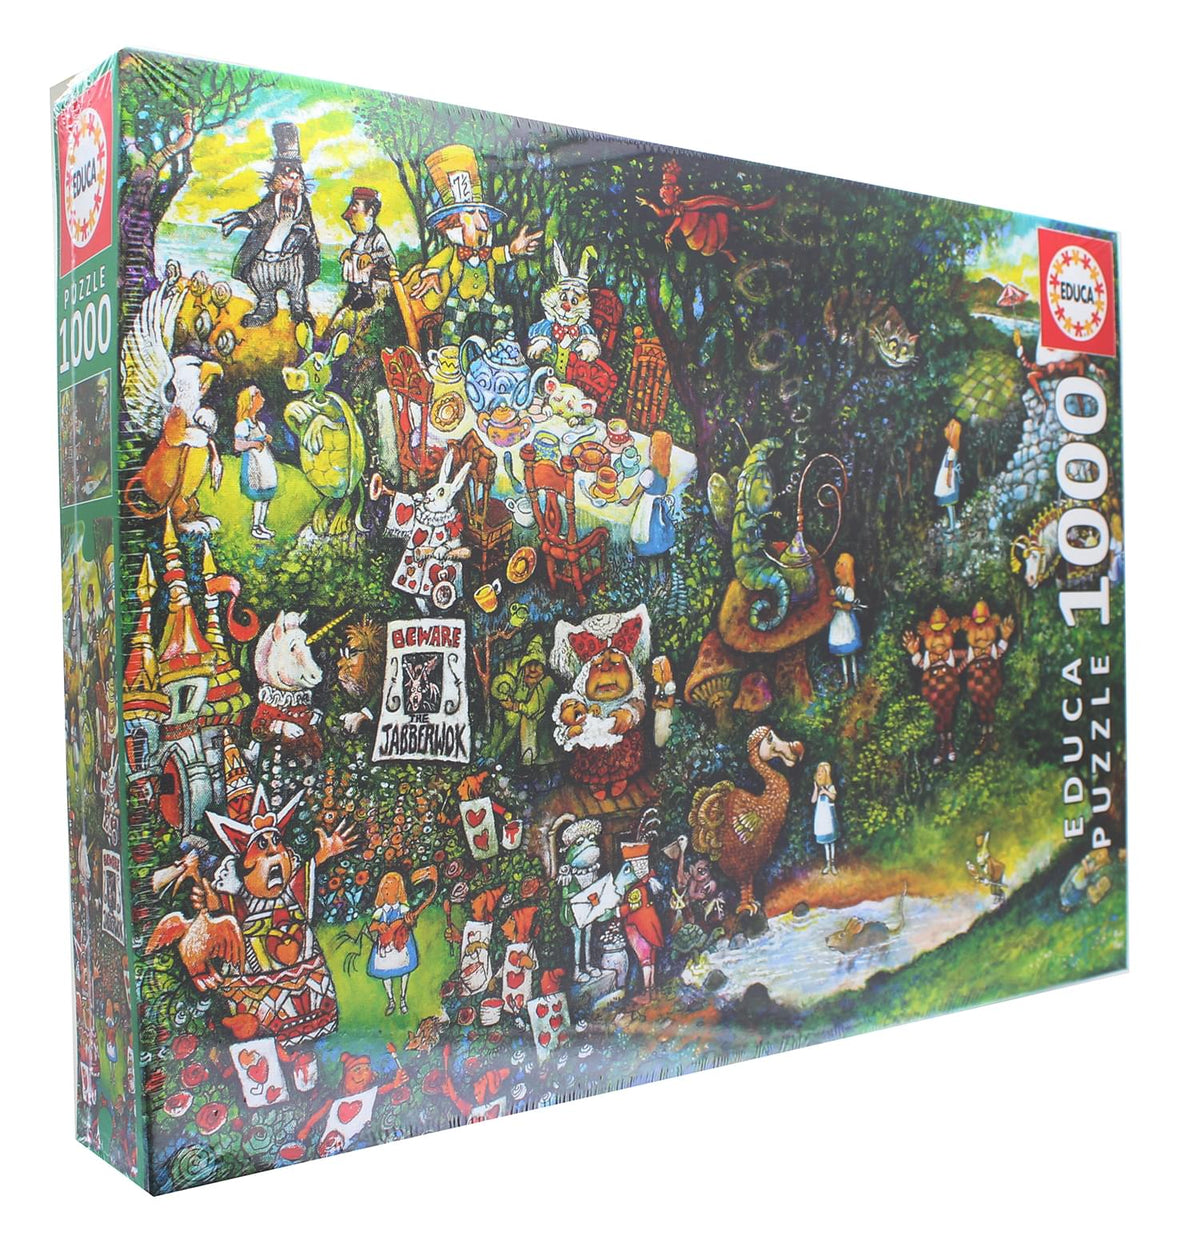 Alice in Wonderland 1000 Piece Jigsaw Puzzle